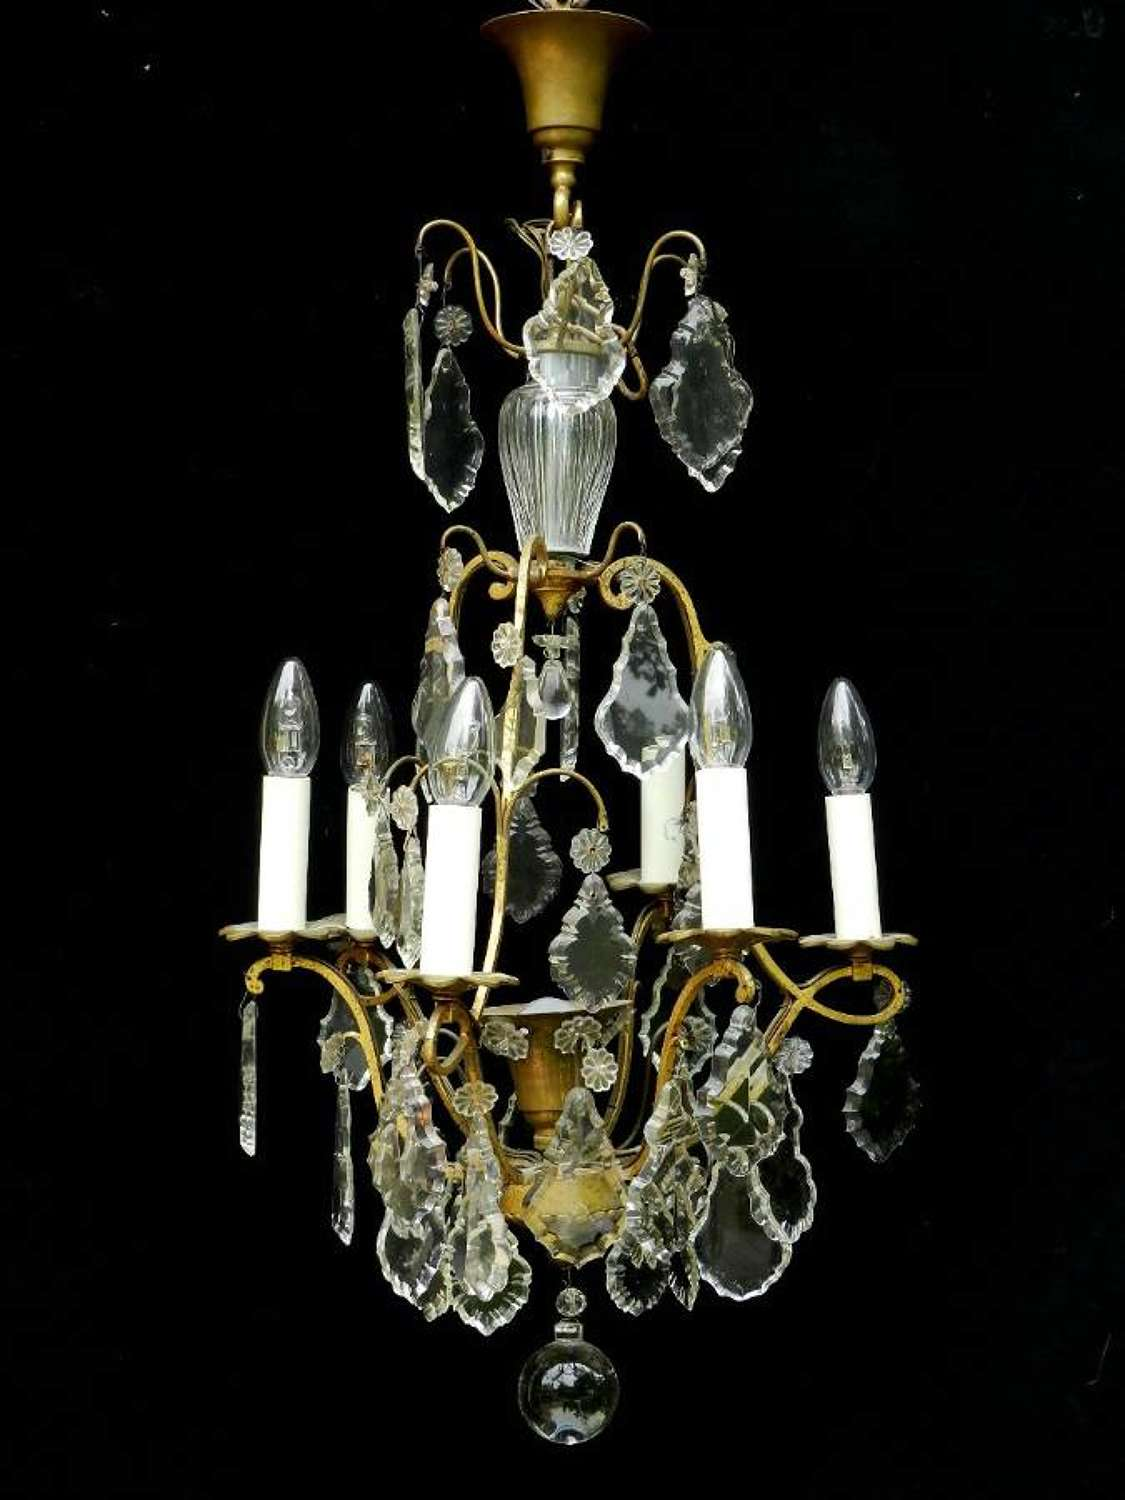 French Cage Chandelier c1920